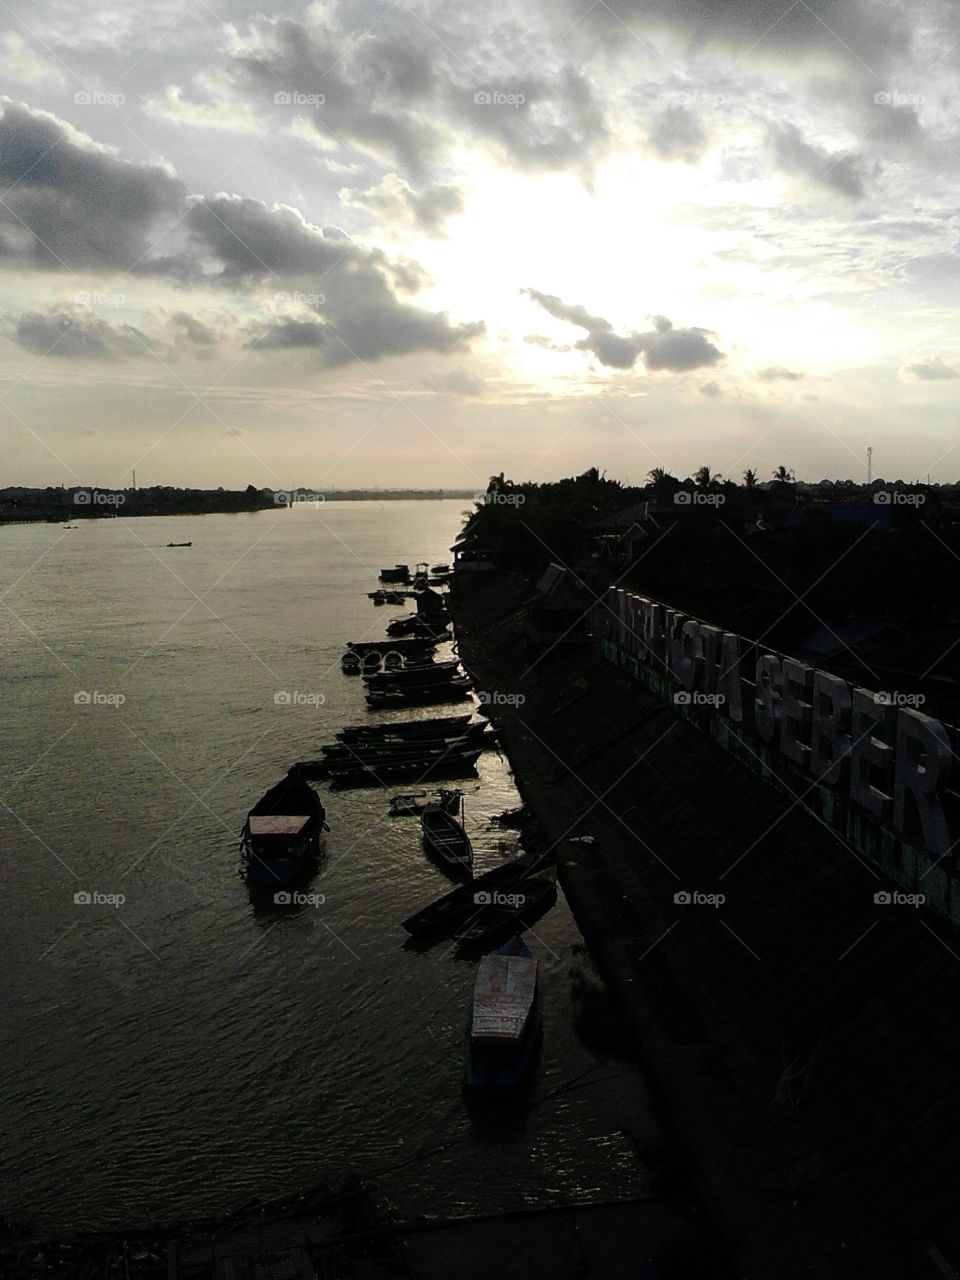 batanghari river in evening with sunset